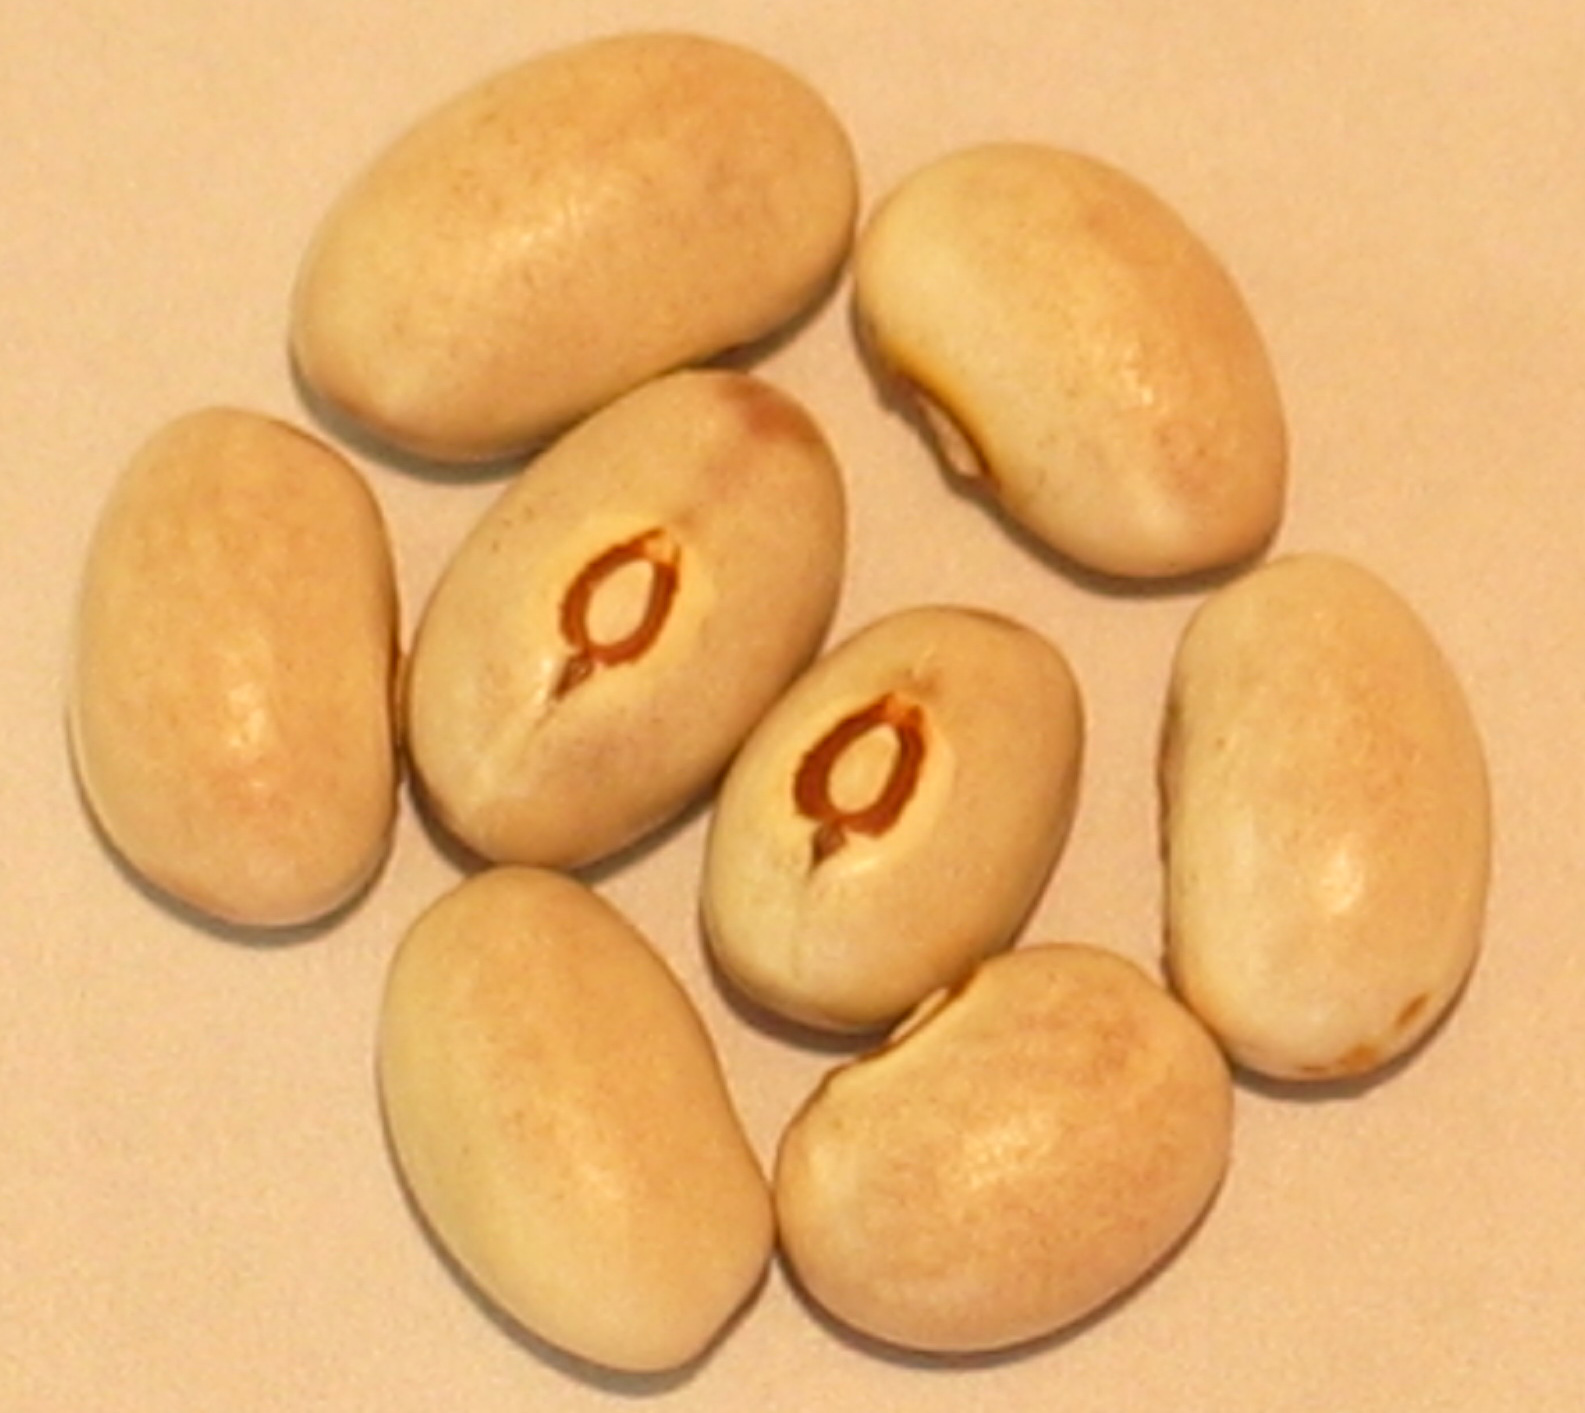 image of Buddha's Bellybutton beans